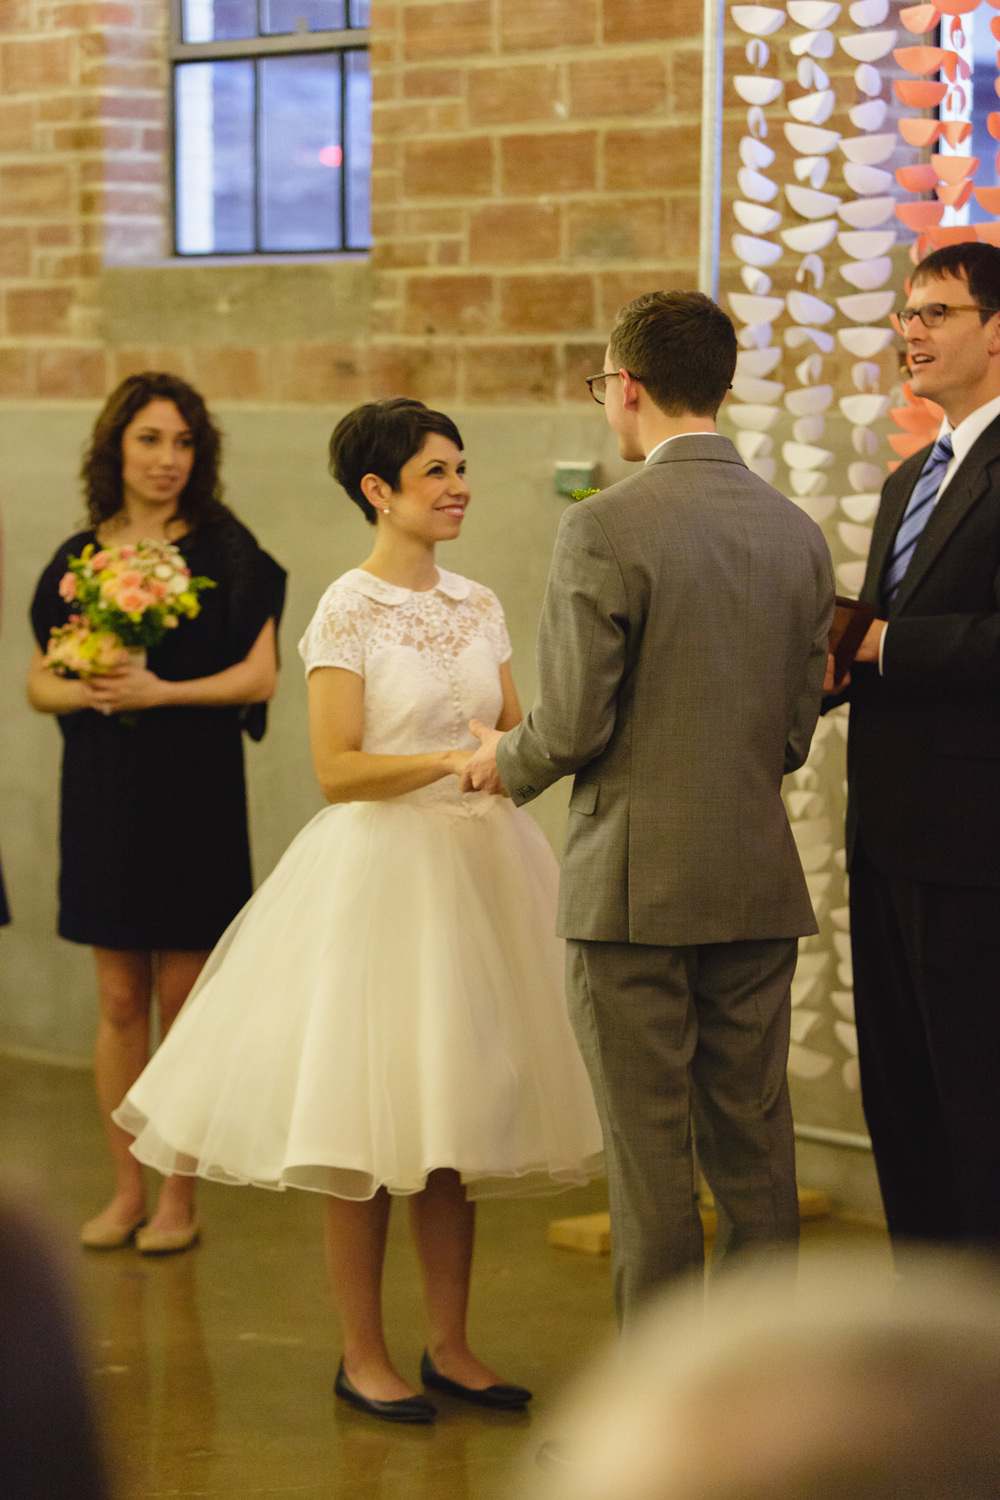 Kellie+Andrew-Ecclesia-Wedding-Houston-69.jpg